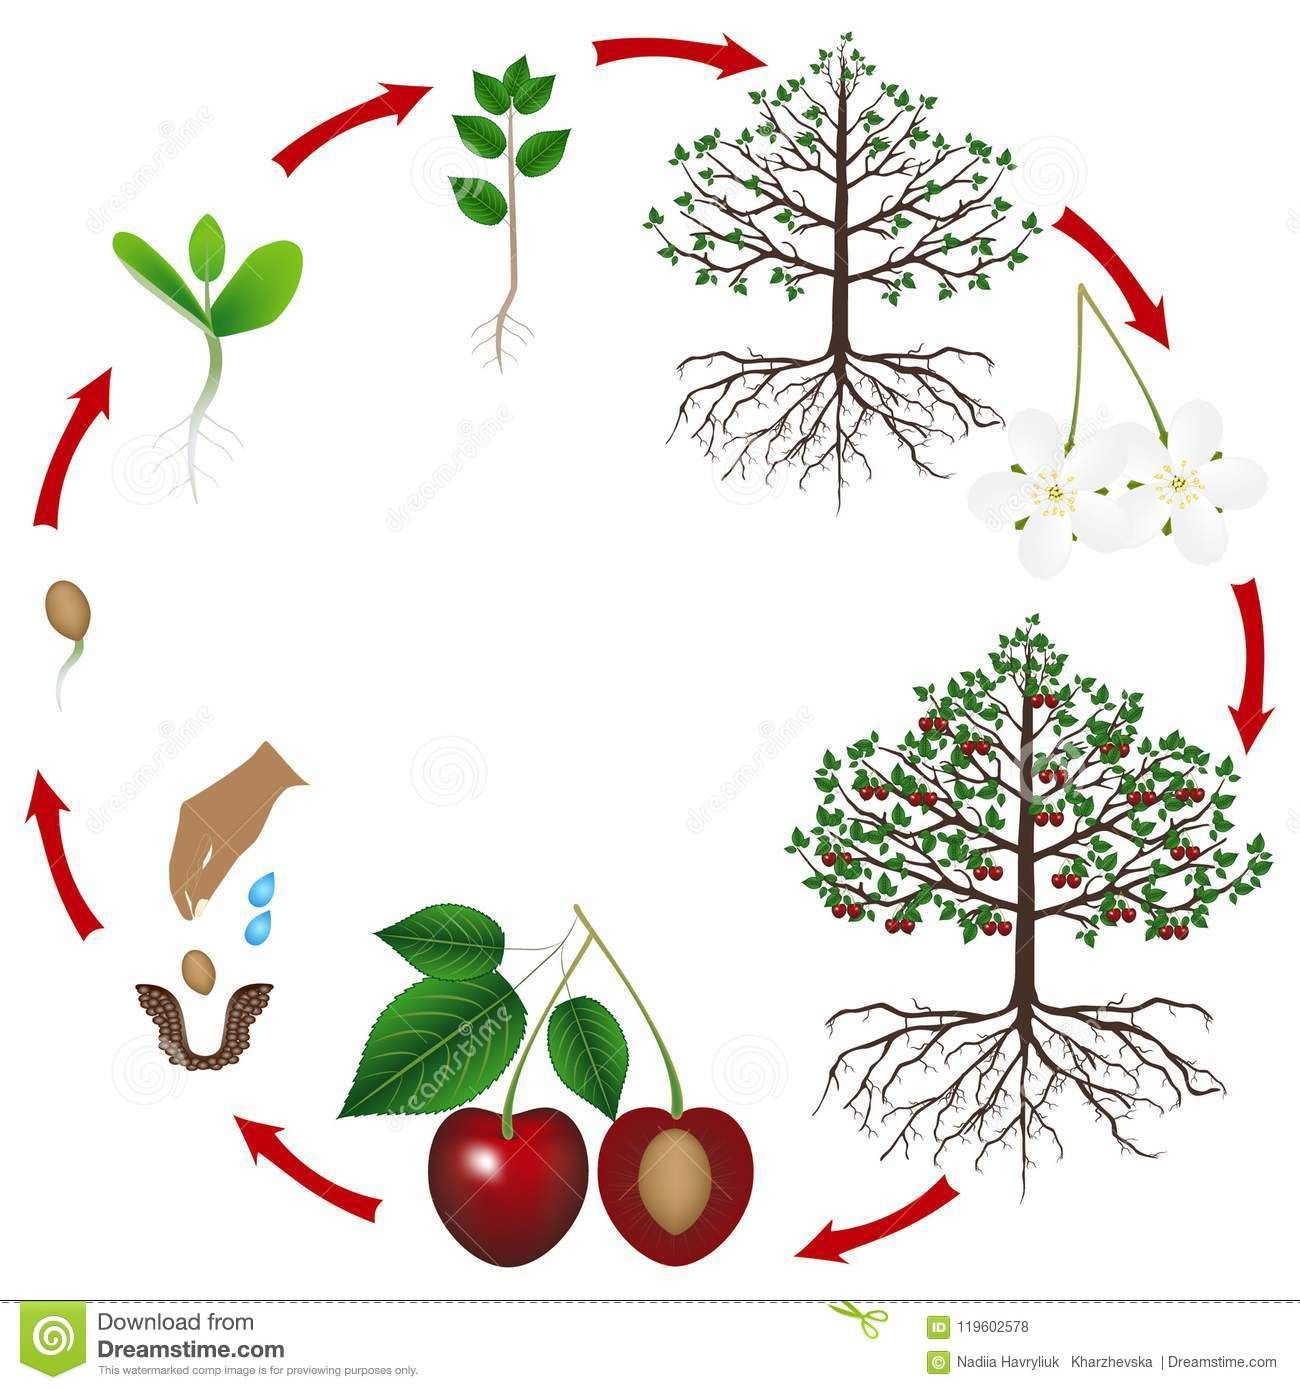 Pin By Ibrahim Shariff On Science Experiment Life Cycles Tree Life Cycle Plant Life Cycle